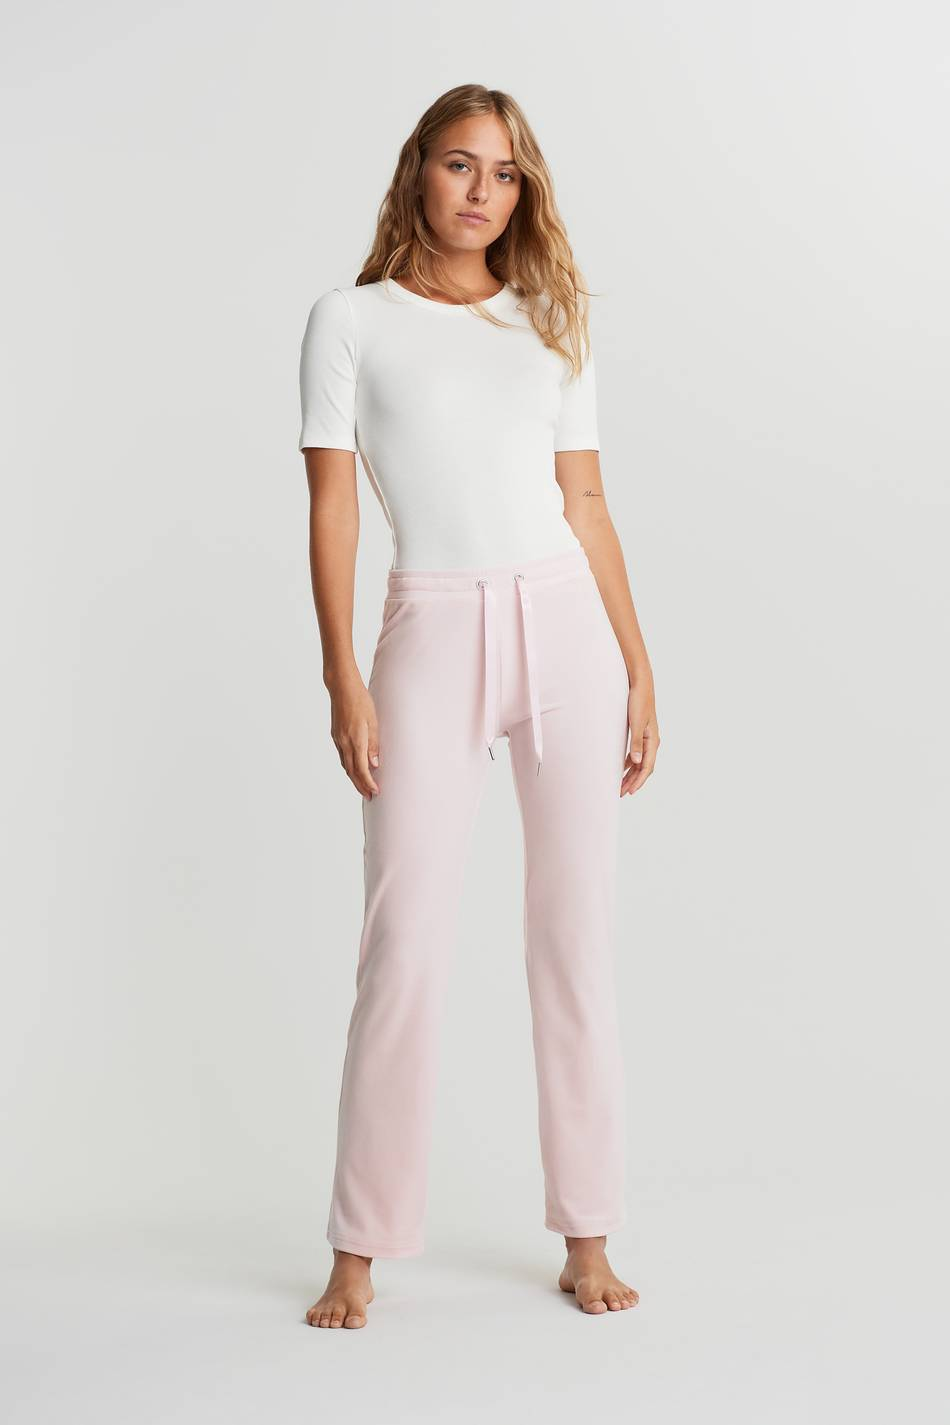 Gina Tricot Cecilia velour trousers S Female Light pink